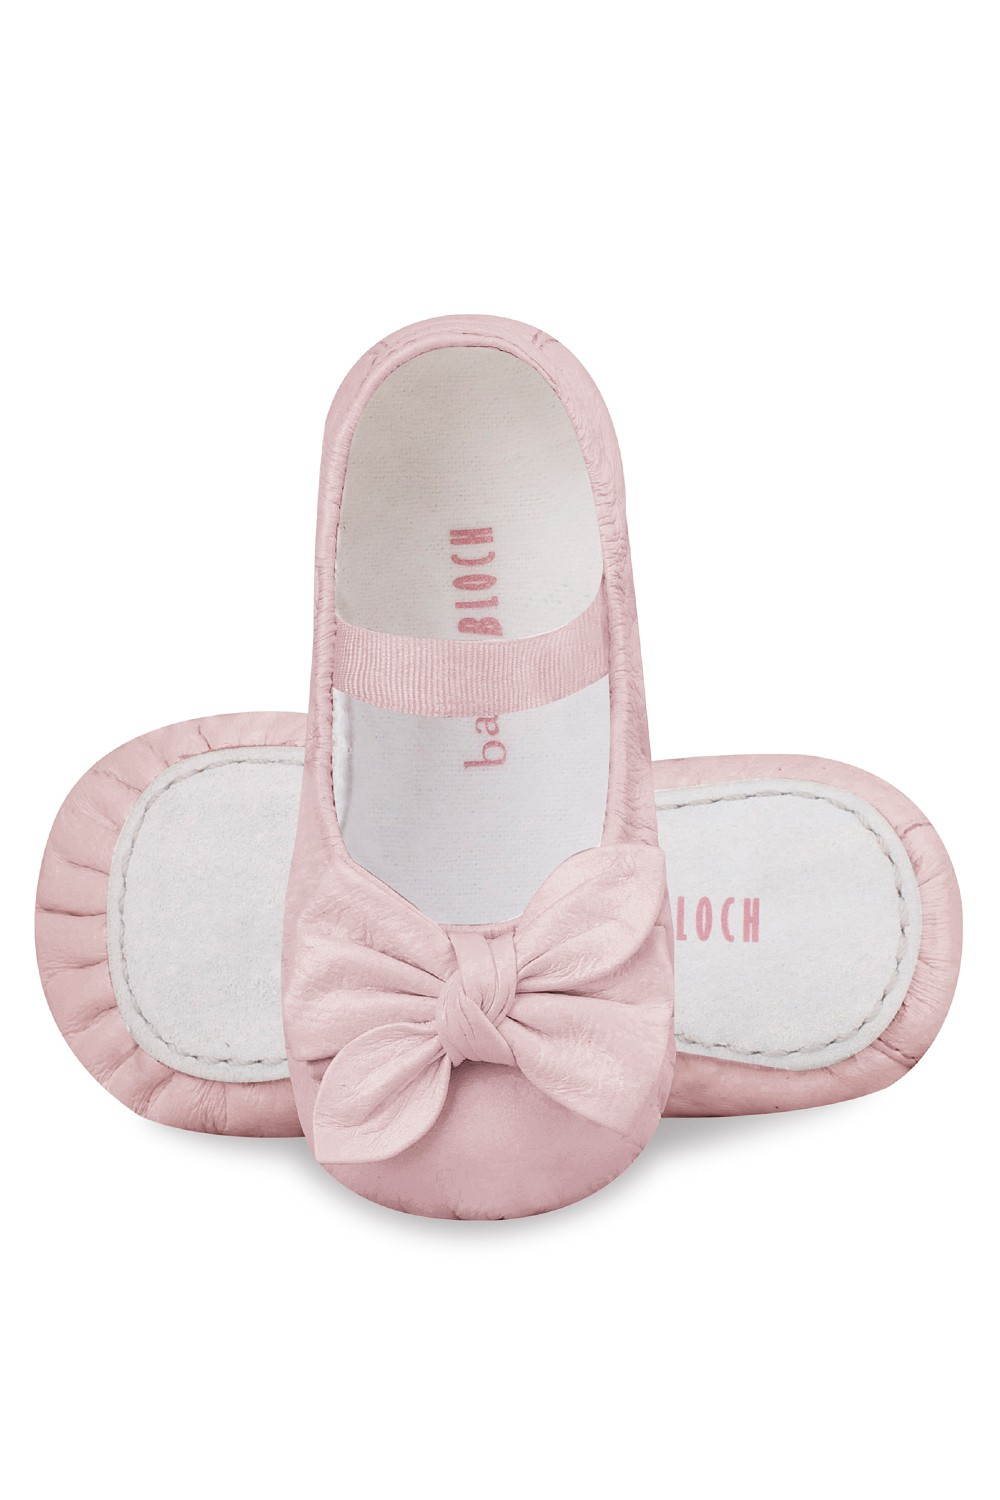 Clara - Baby Babies Fashion Shoes